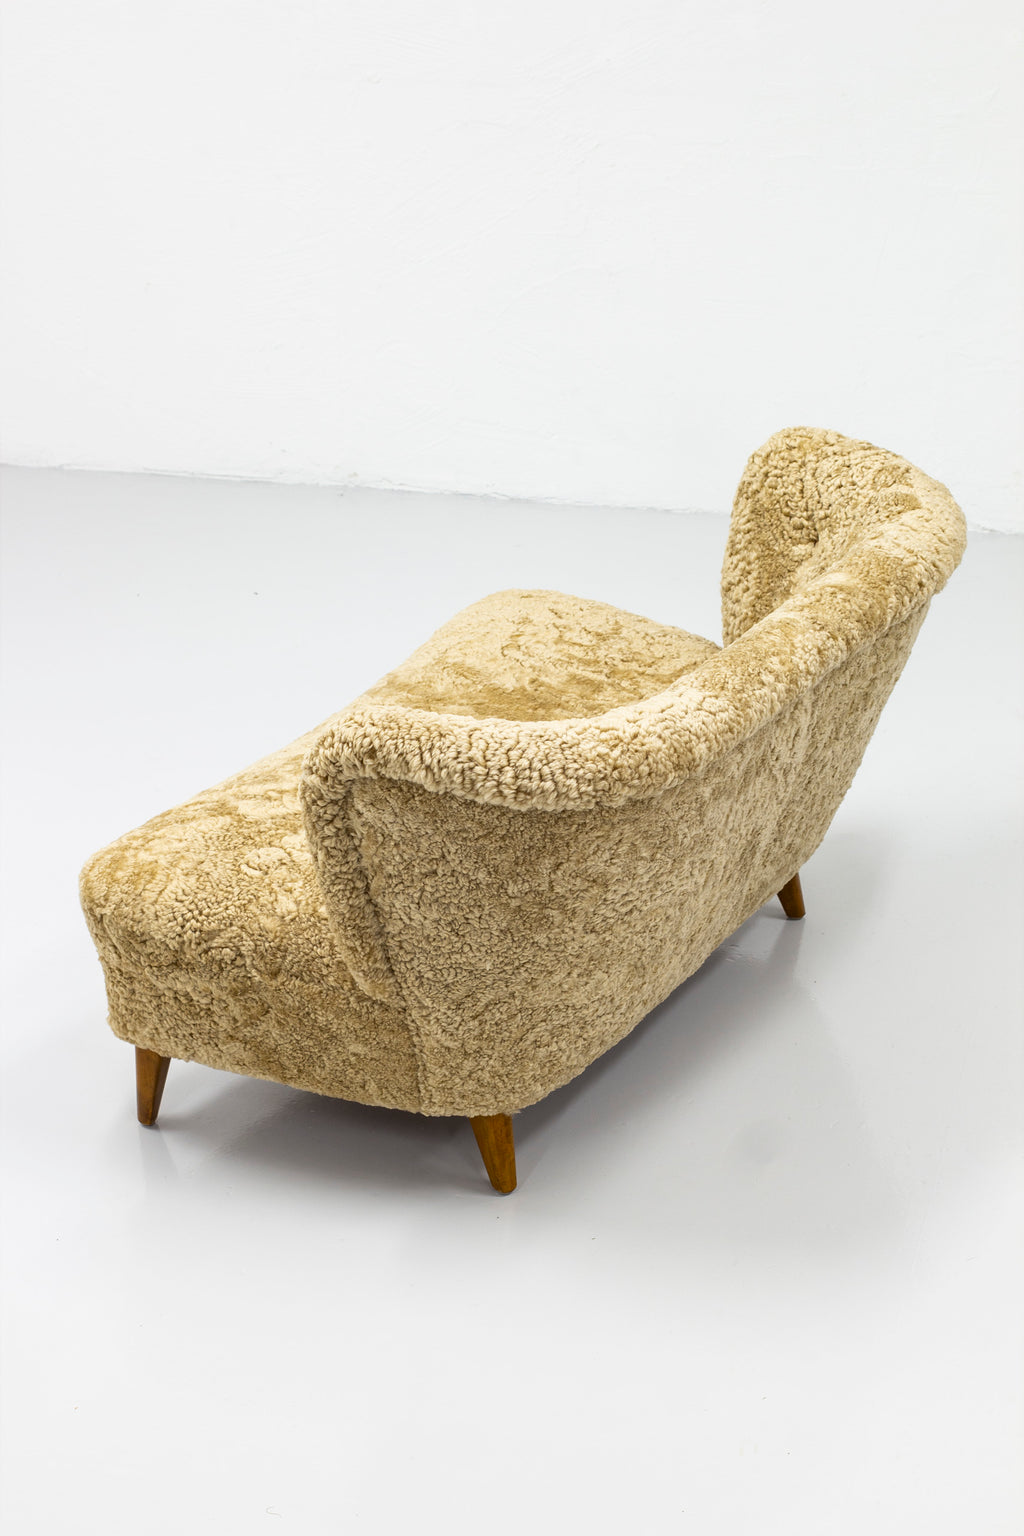 Loveseat shearling sofa by Gösta Jonsson